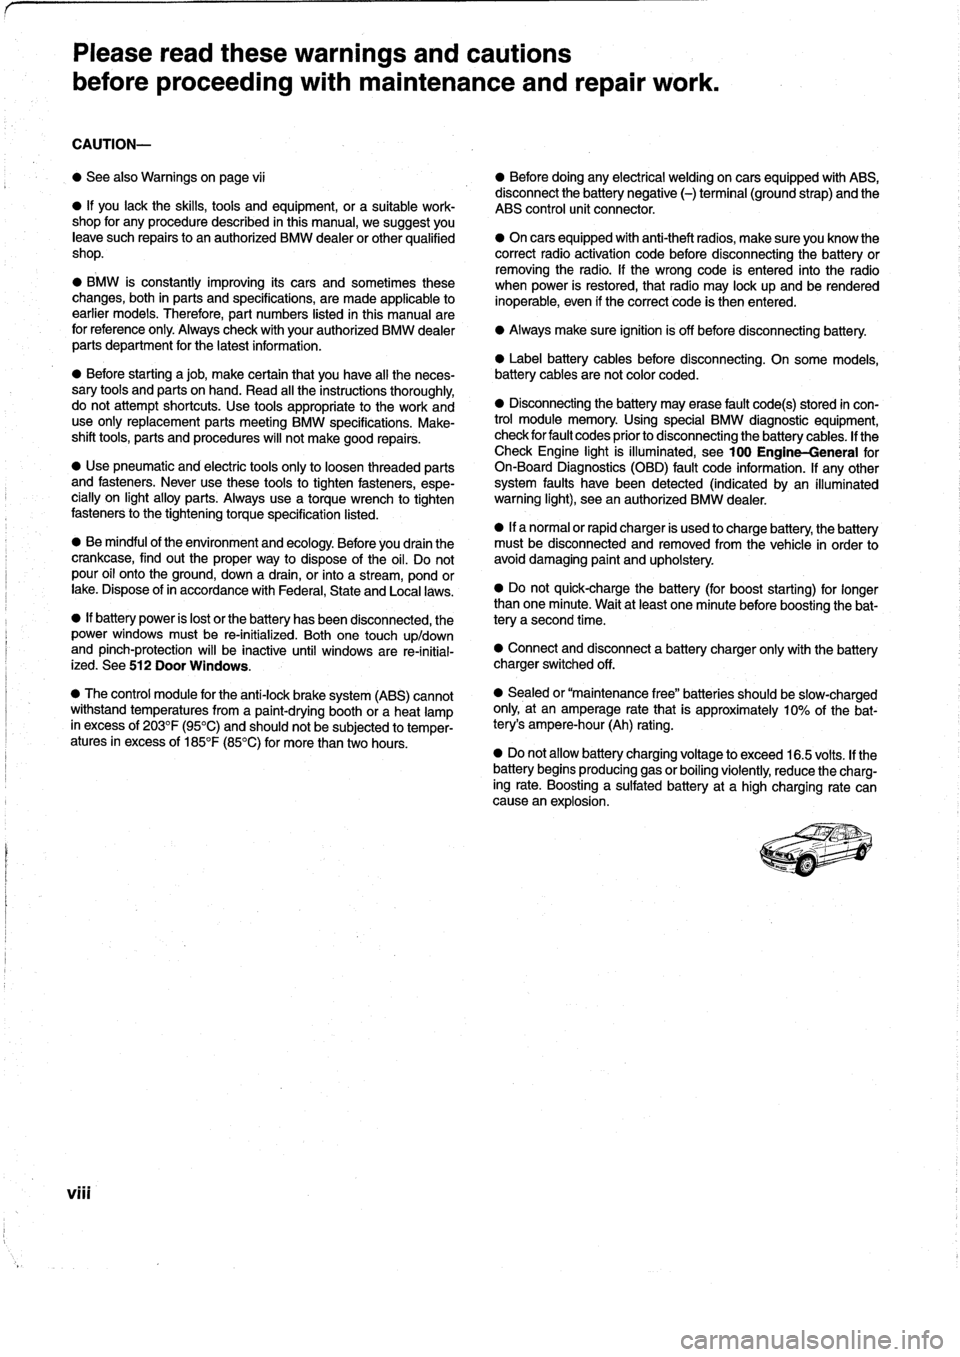 BMW 323i 1993 E36 Workshop Manual, Page 8